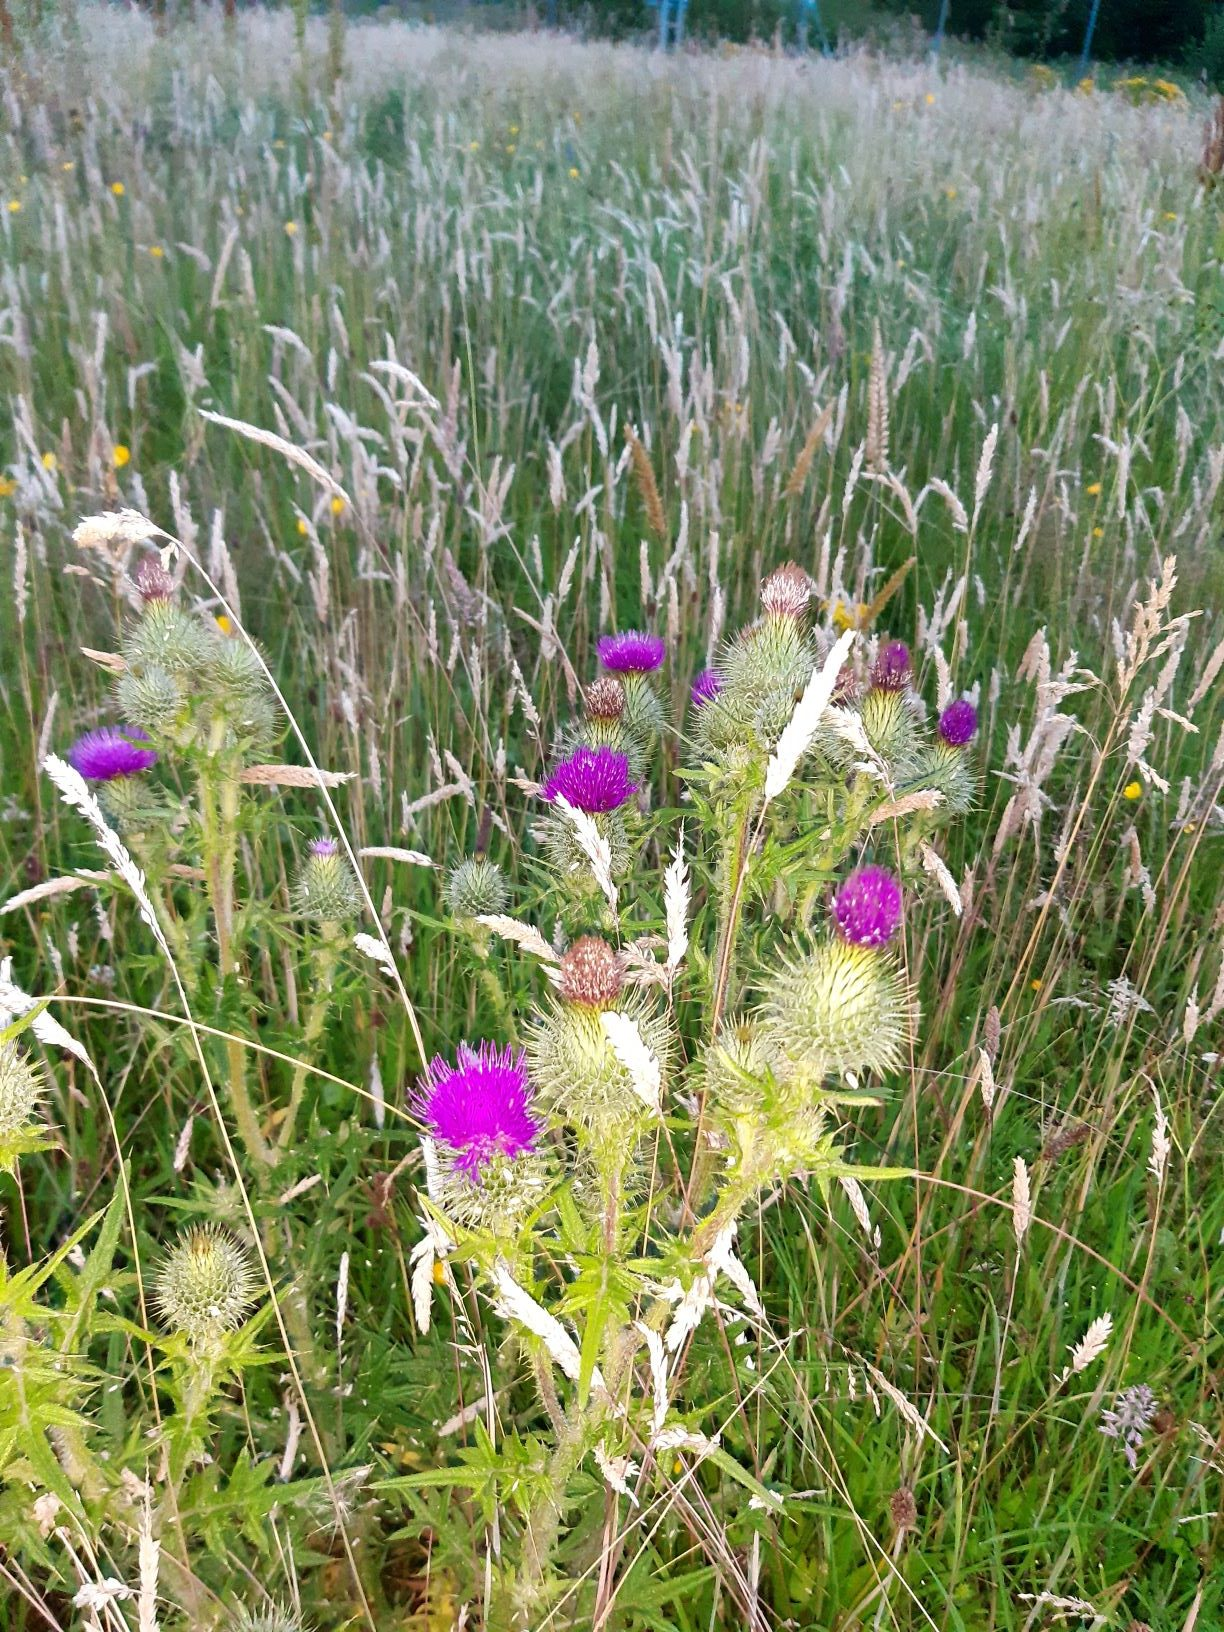 The image shows a Scottish thistle. The leaves are very spiky. The floweriug is a ball of spikes maybe an inch or two in diameter, with a bright purple tuft at the top. It is a more imposing flower than any of the thistles I encountered in the United States